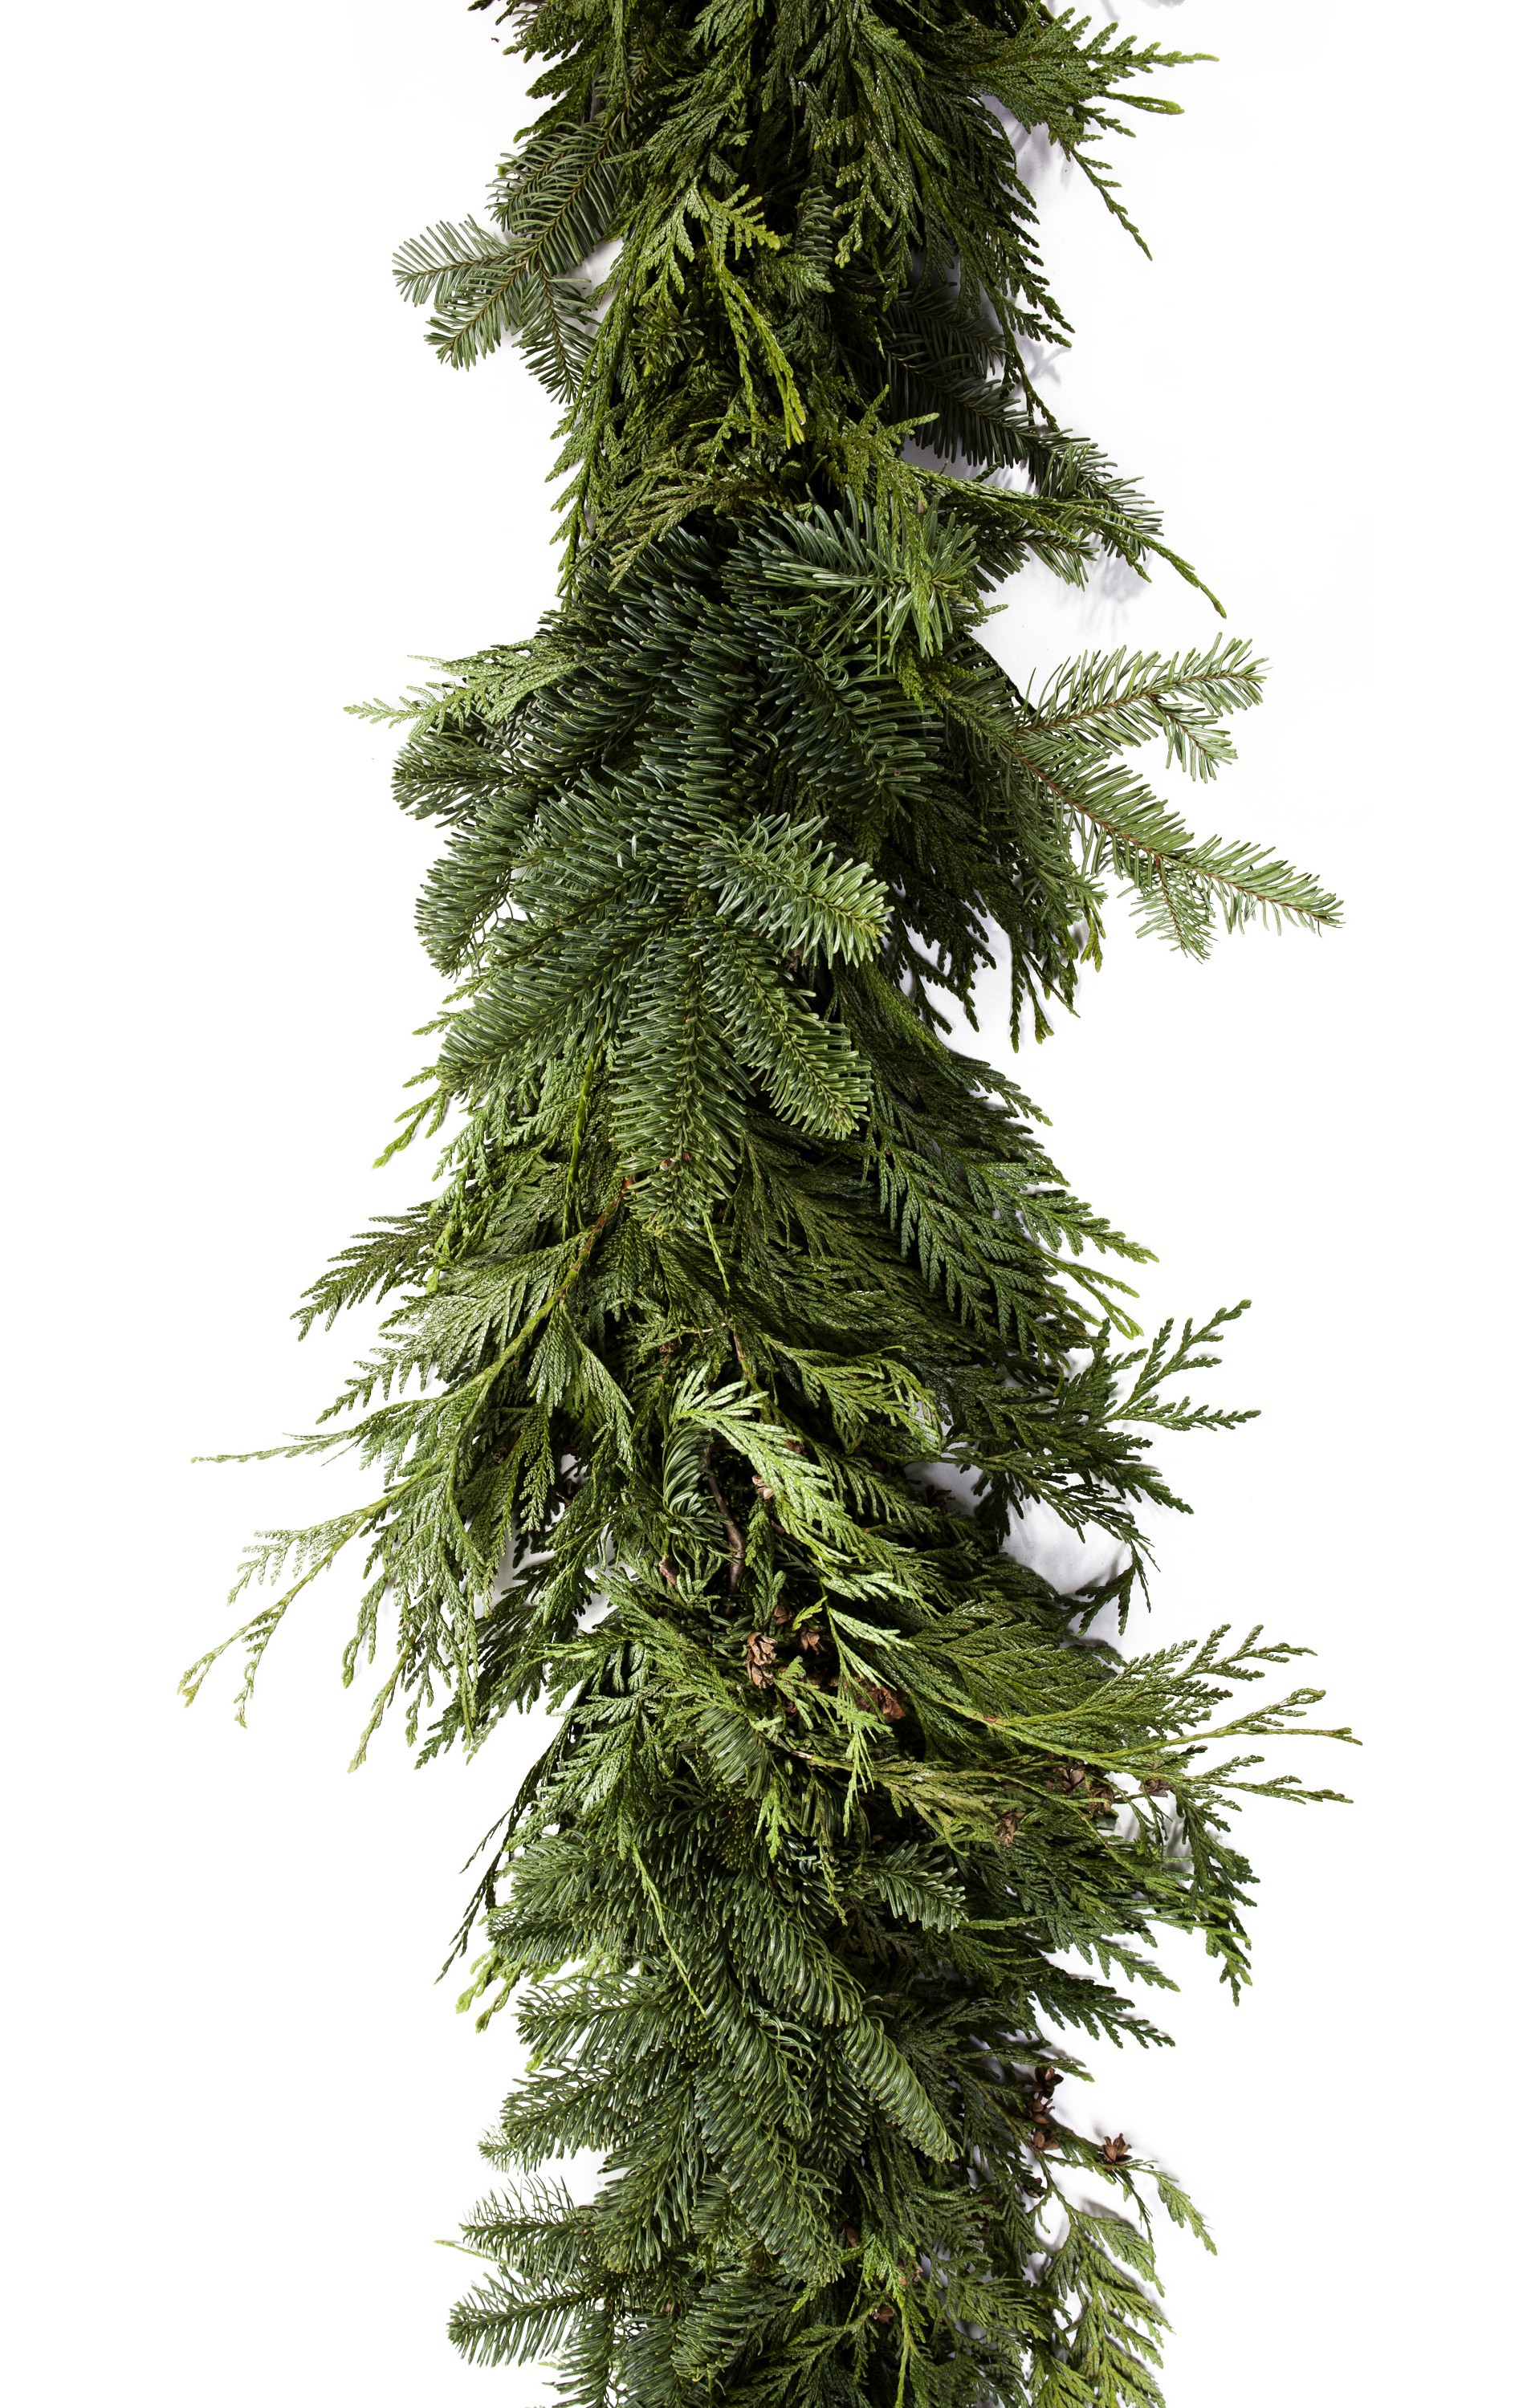 Granstrom evergreens l l c for The evergreen